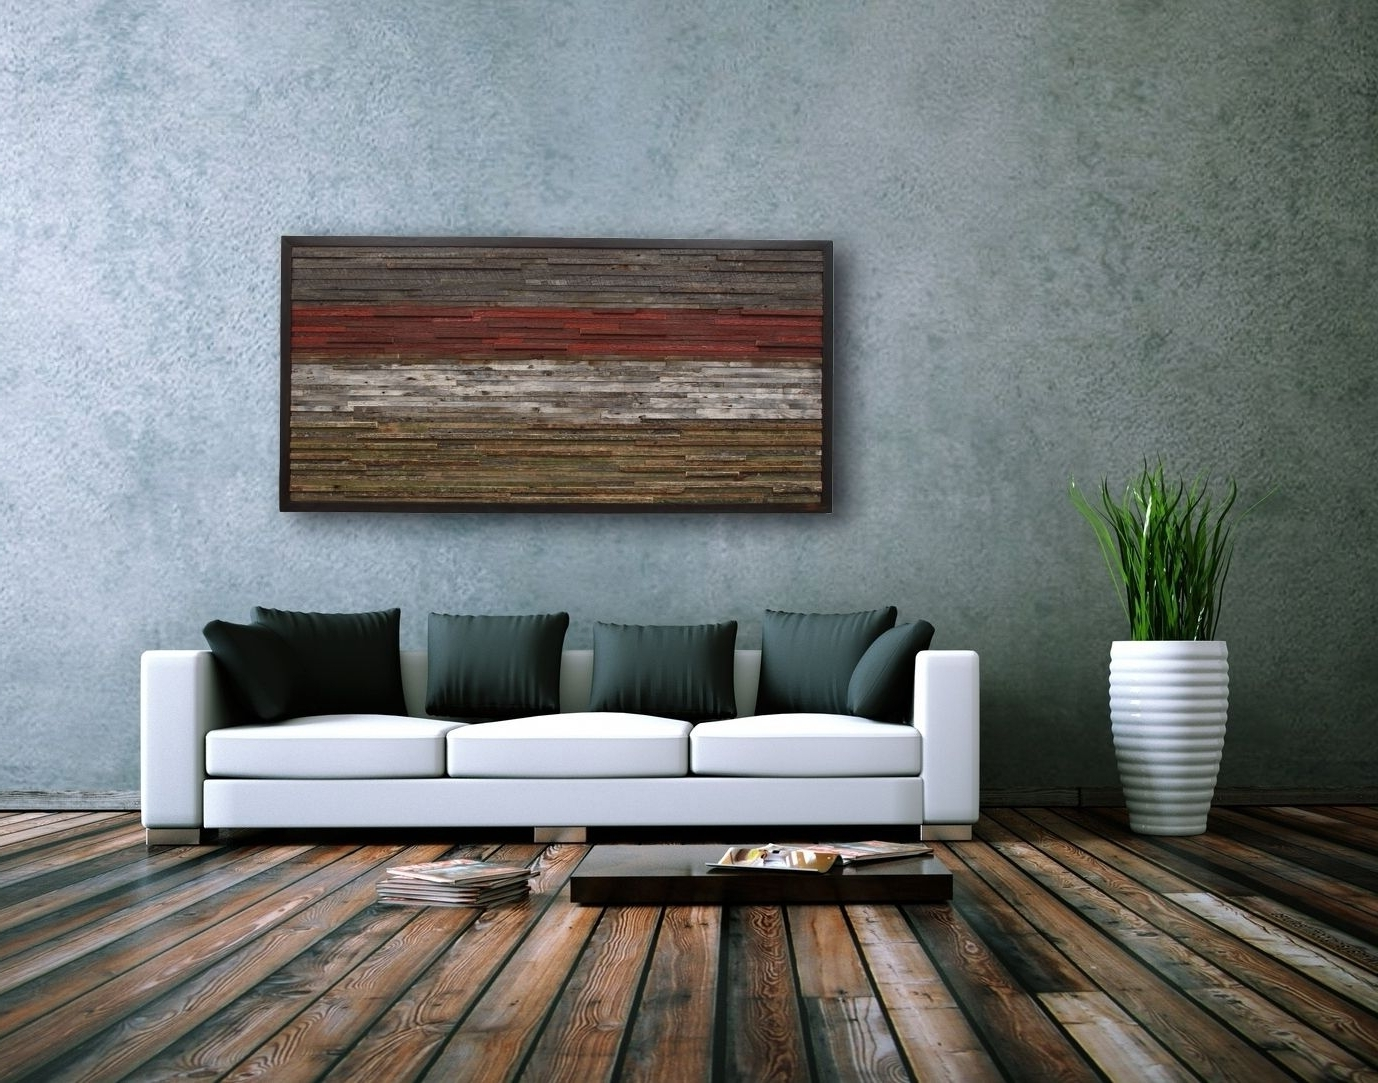 Fashionable Large Rustic Wall Art Inside Astonishing Strikingly Ideas Large Rustic Wall Art With Metal (View 3 of 20)